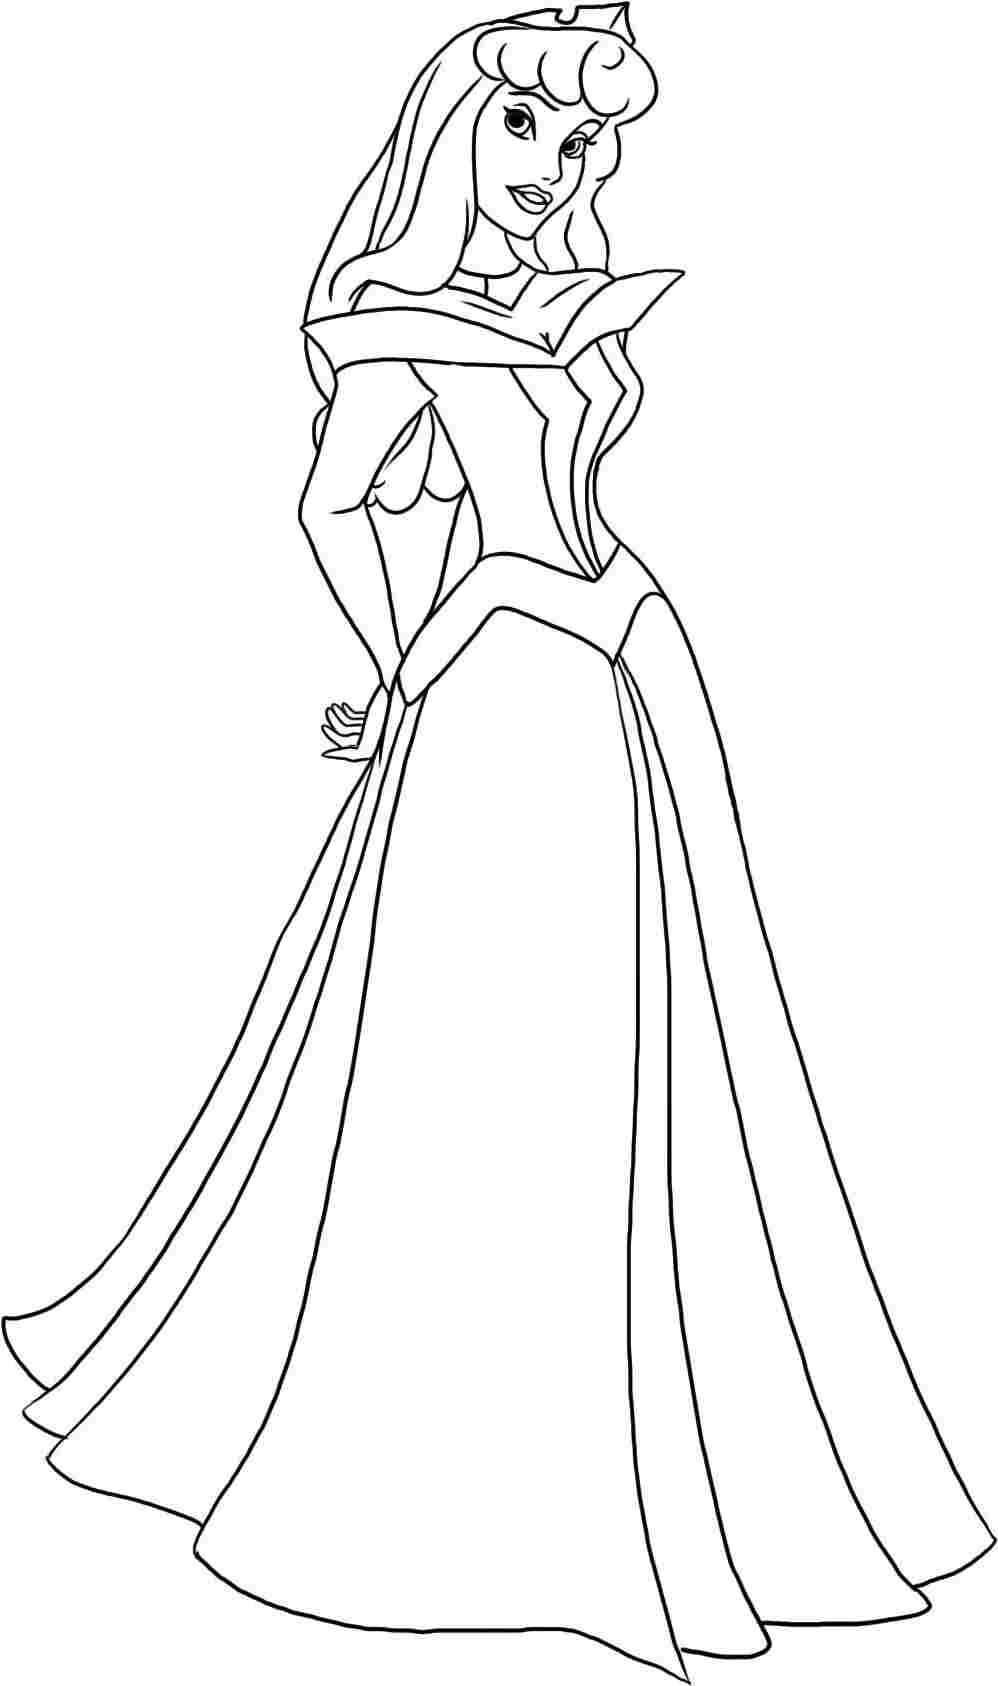 Printable Coloring Pages Of Aurora Az Coloring Pages Colouring Pages Of